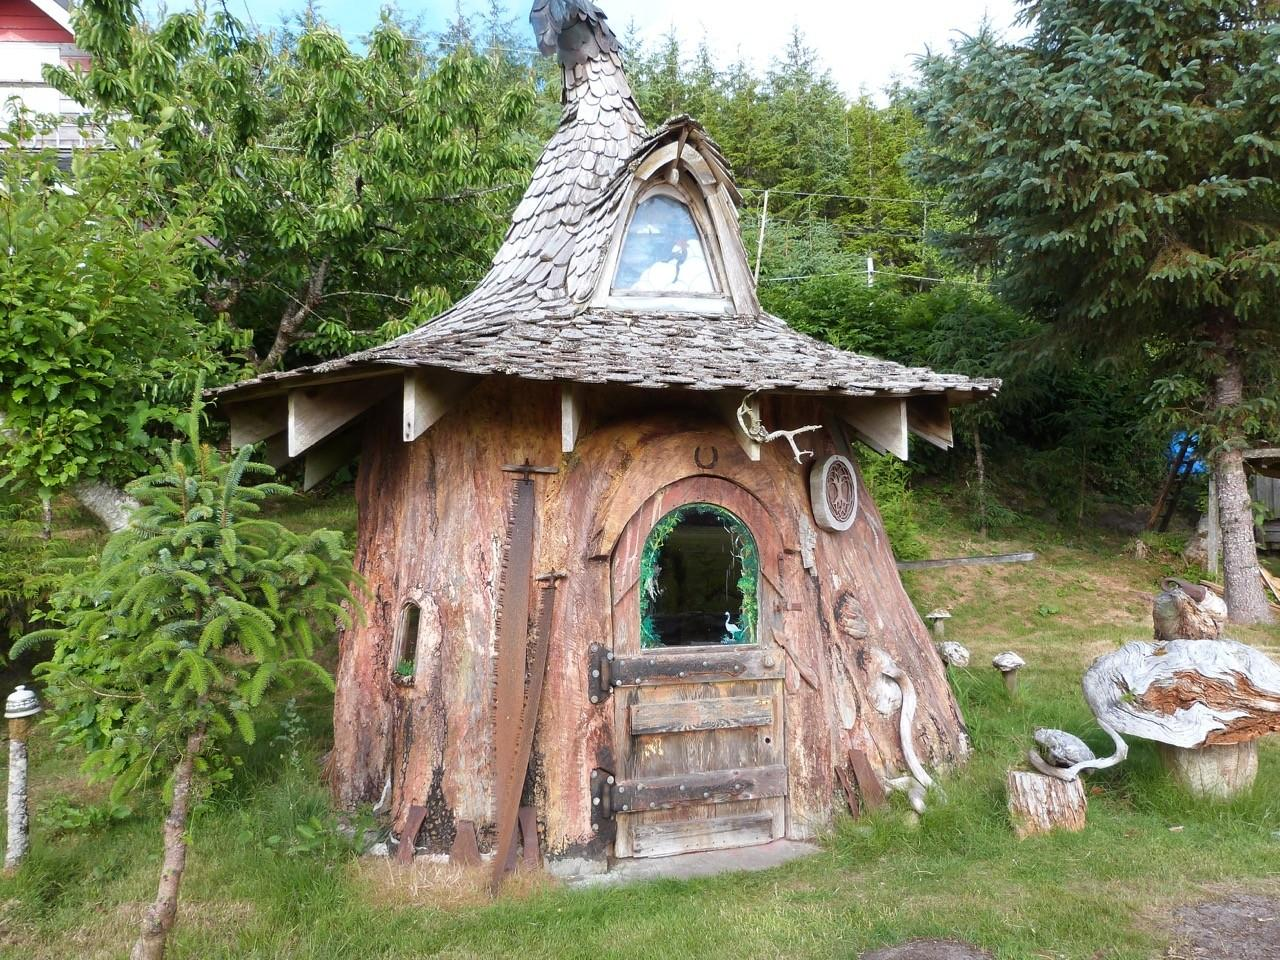 Tiny Hobbit Home Carved Stump Straight Out